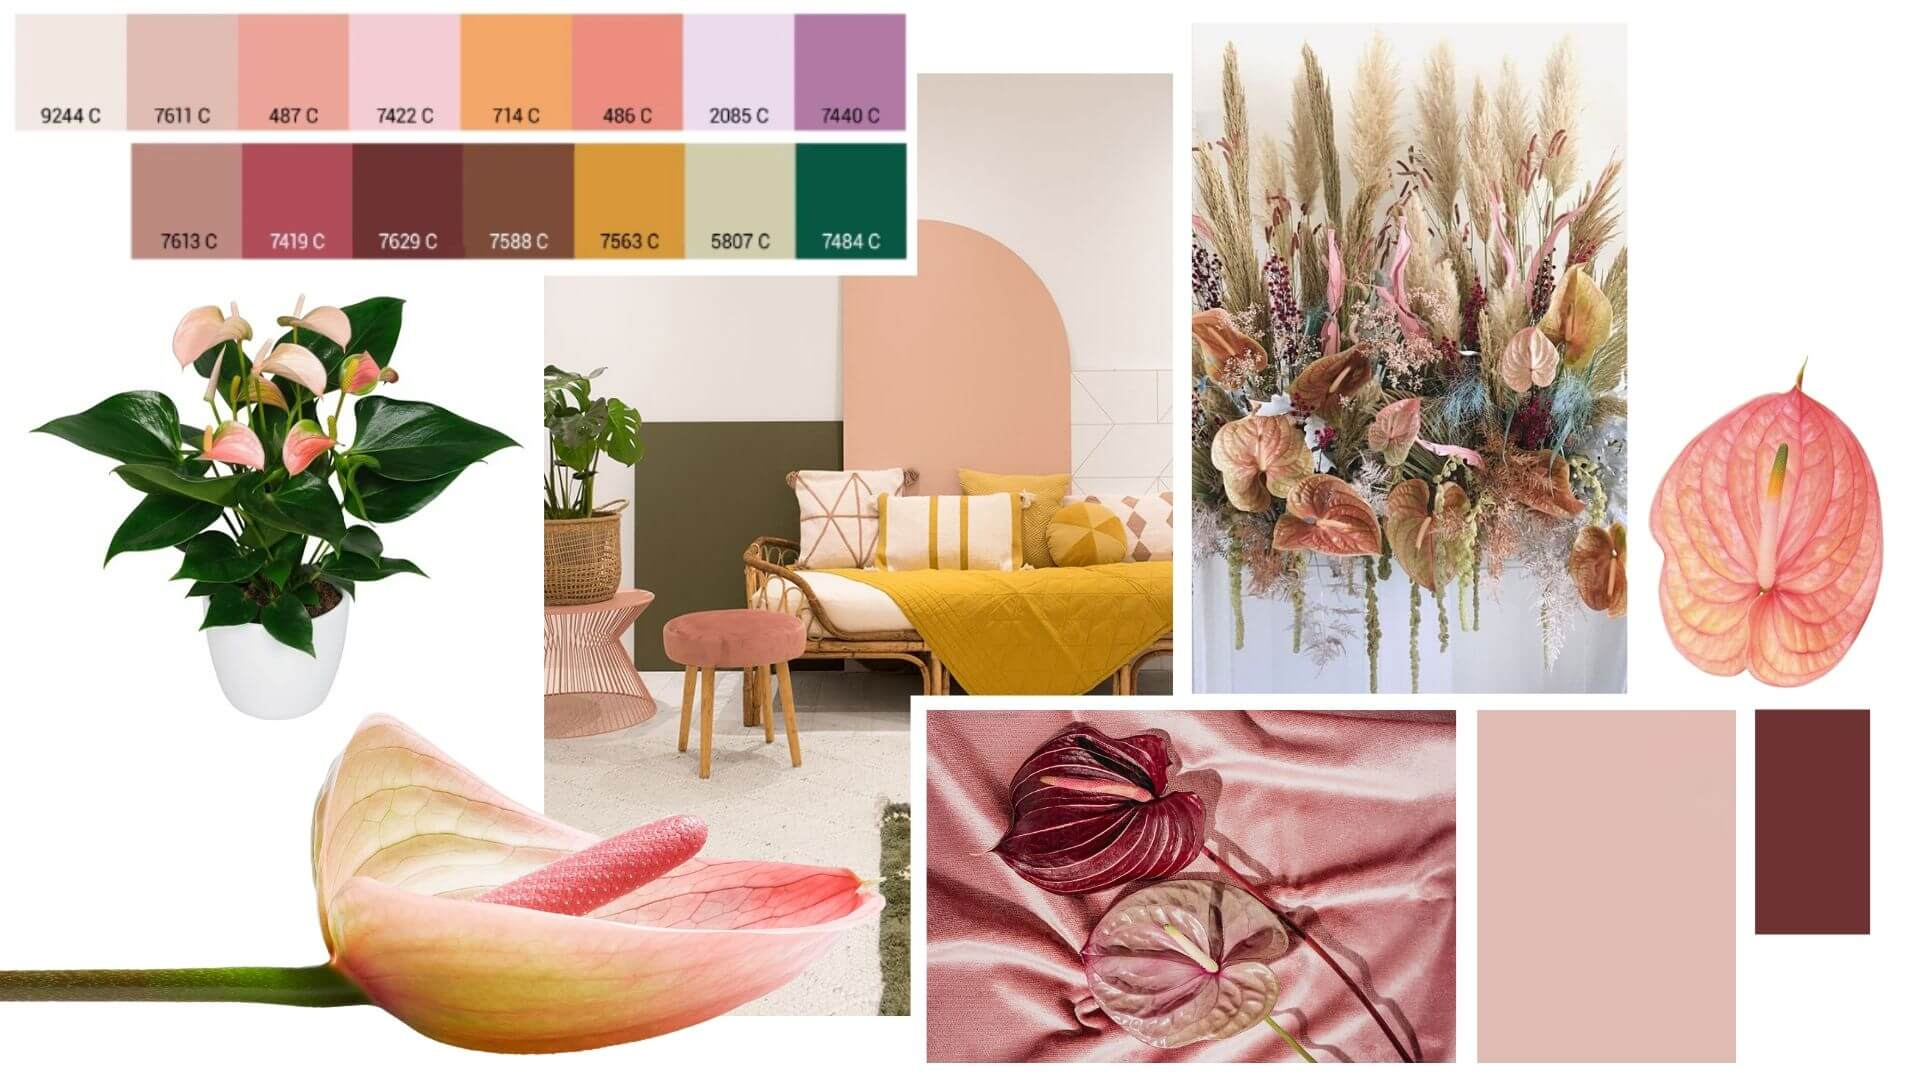 The style trends for the flower and plant sector in 2021